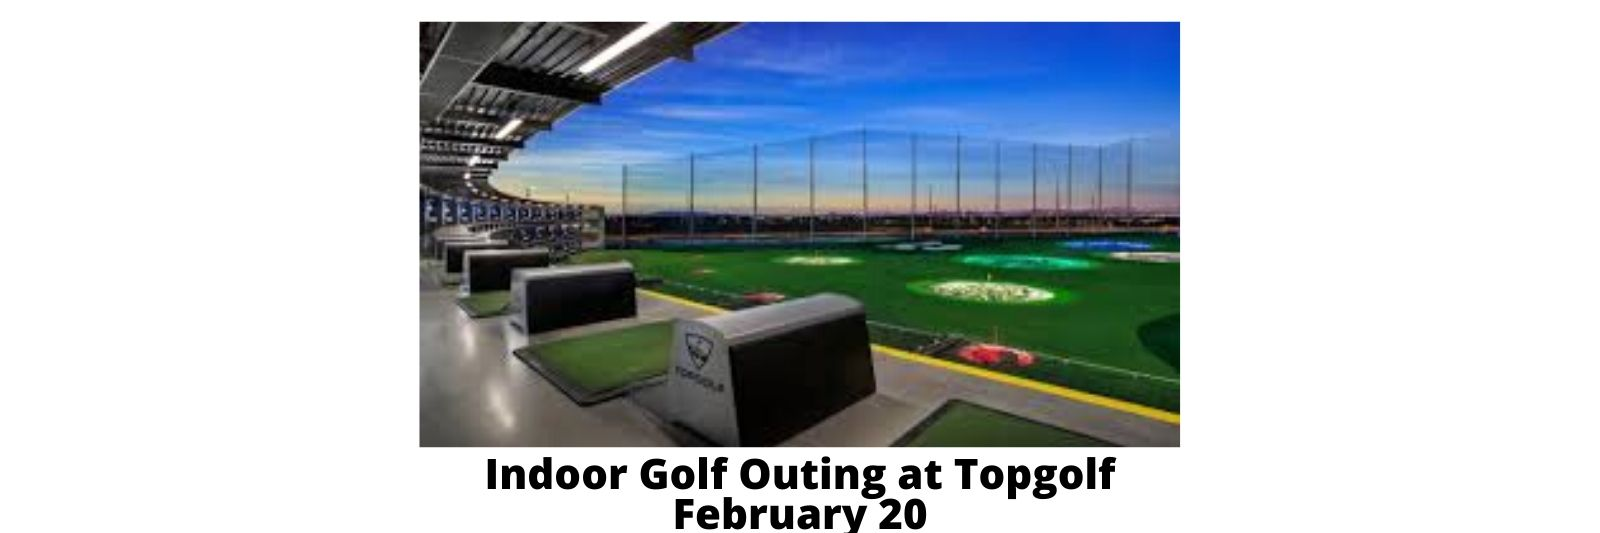 Indoor-Golf-Outing-at-Topgolf-February-20.jpg